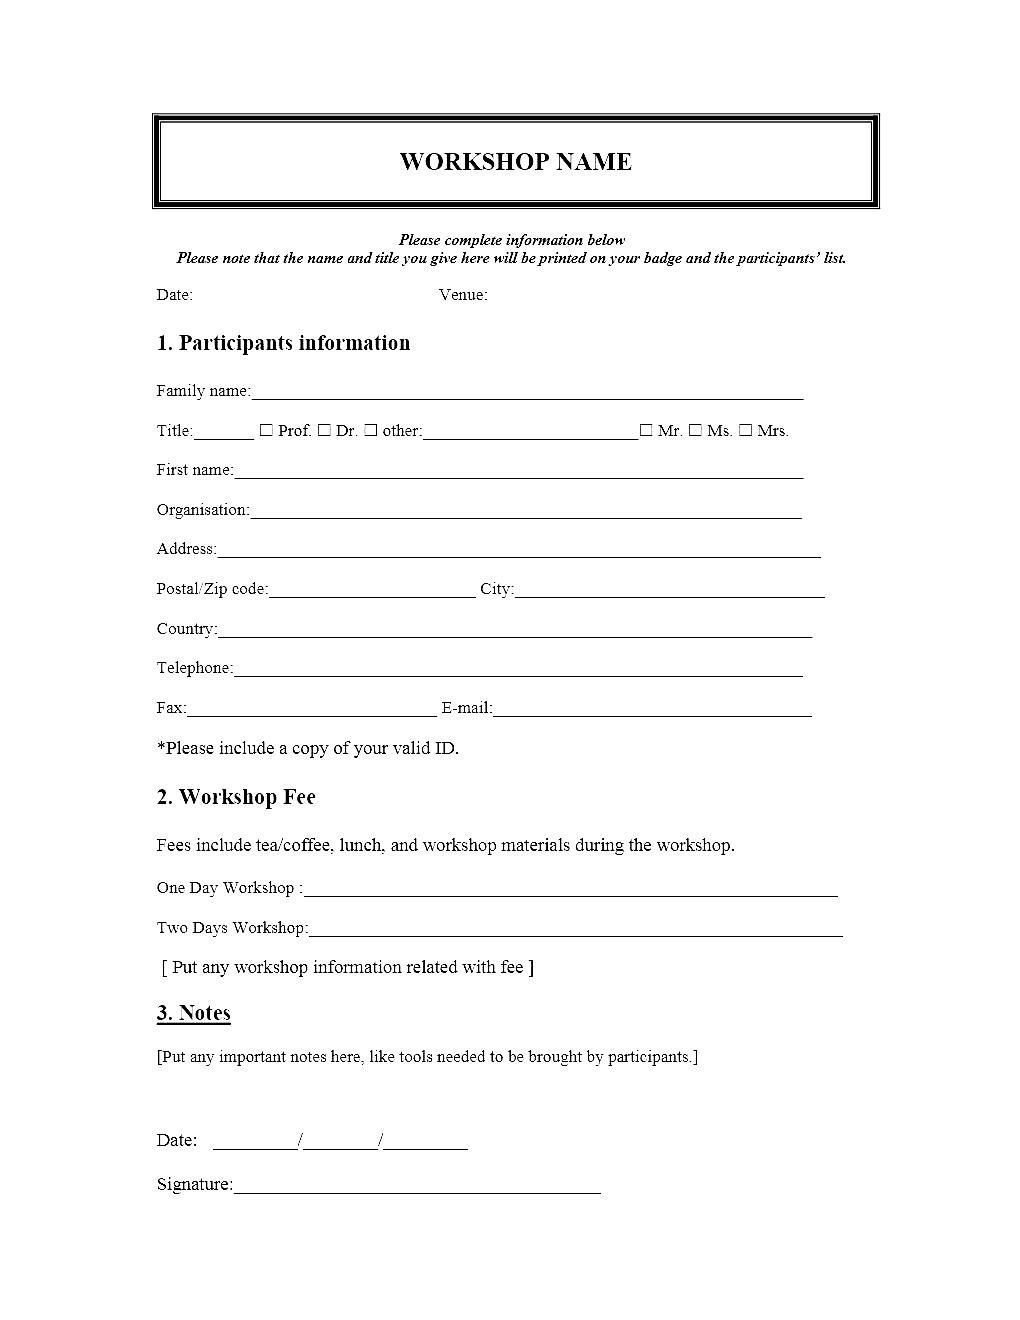 007 Stupendou Registration Form Template Word Image  Conference FreeFull